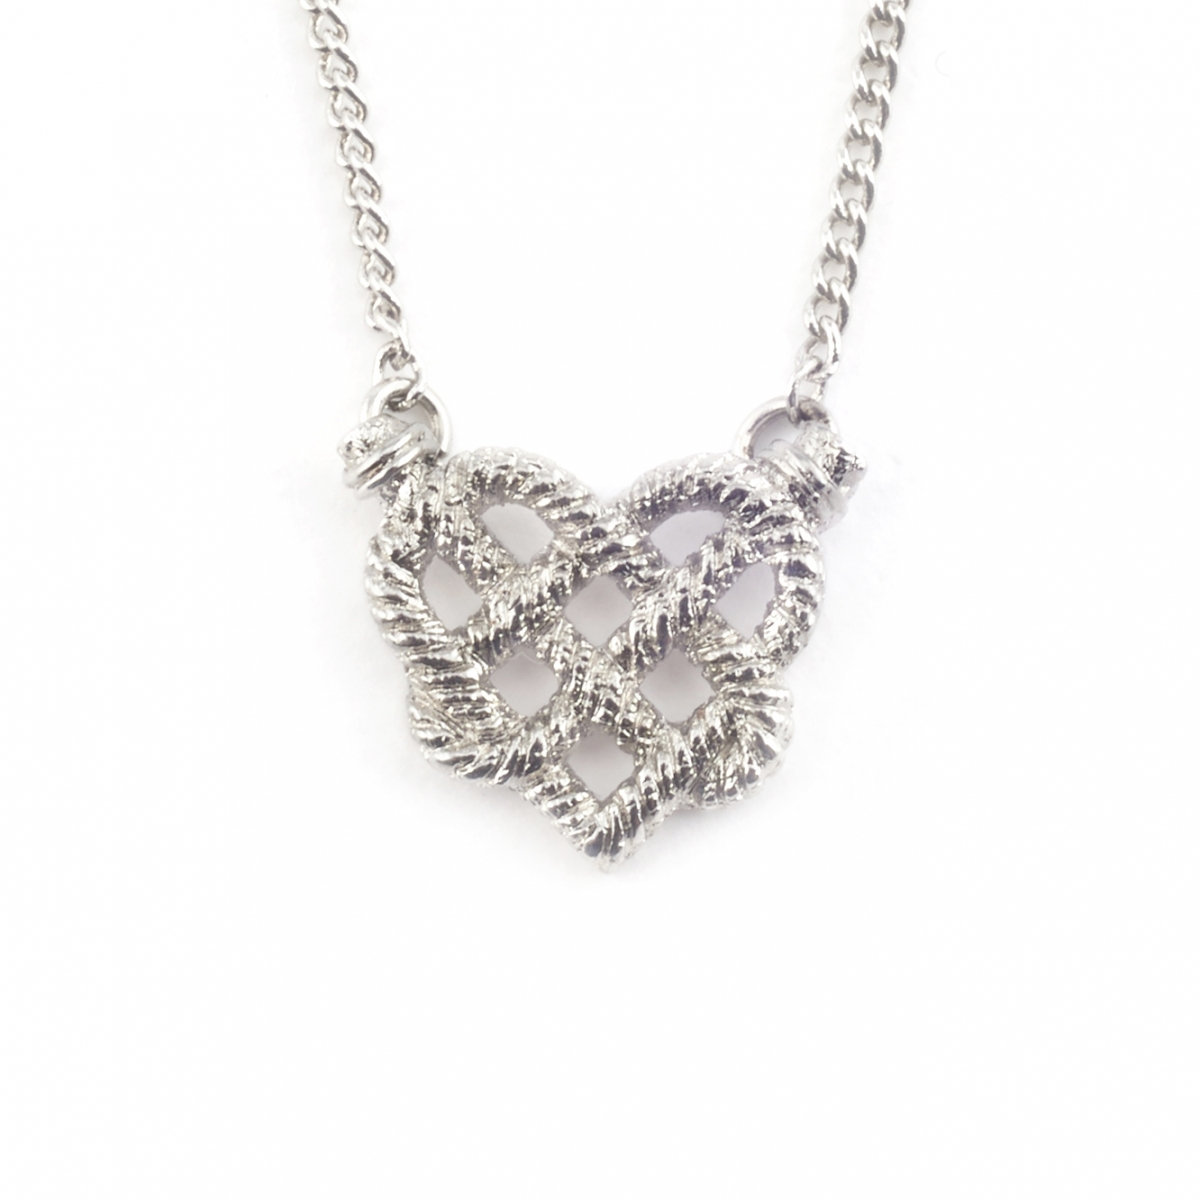 SILVER KNOTTED HEART PENDANT